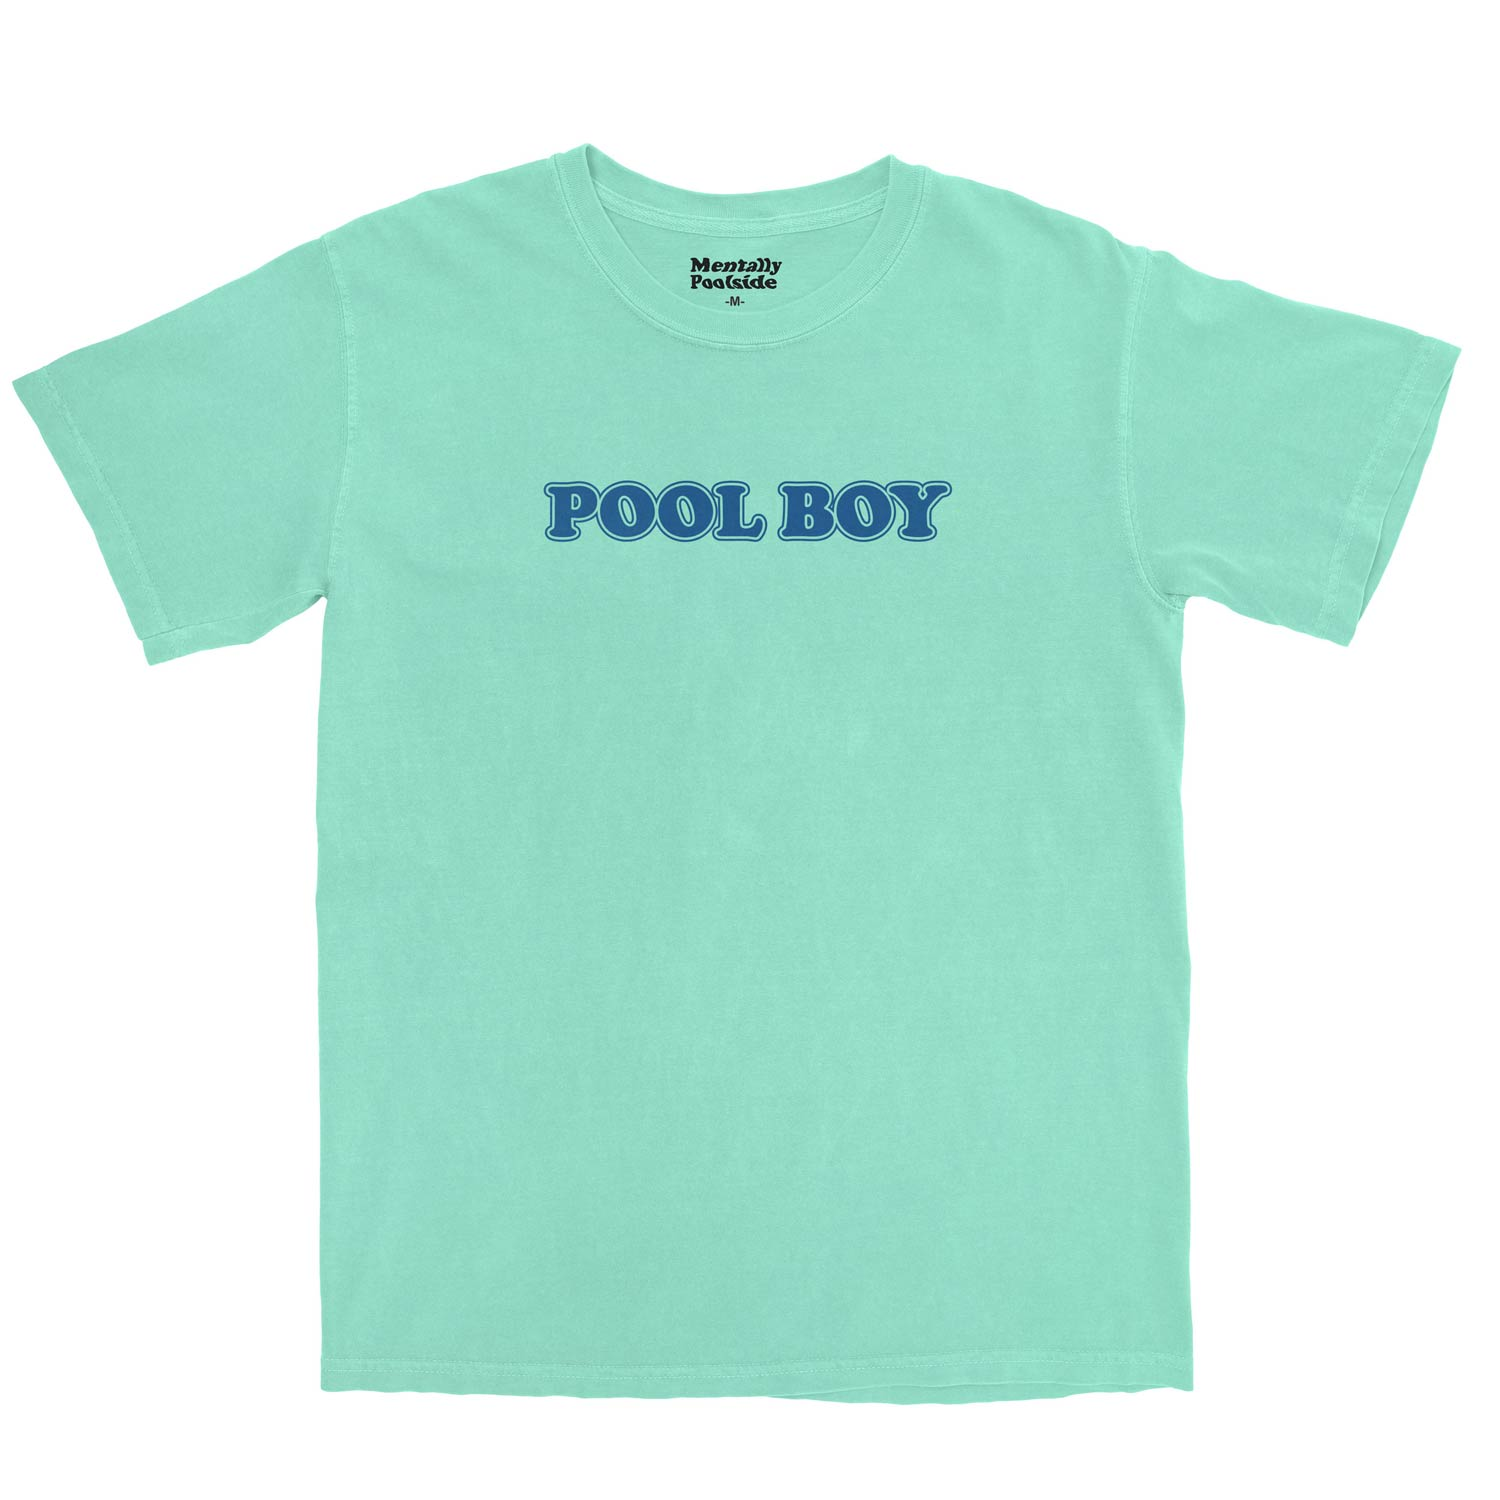 Pool Boy-Tee shirt-Comfort colors-Island Reef-S-Mentally Poolside